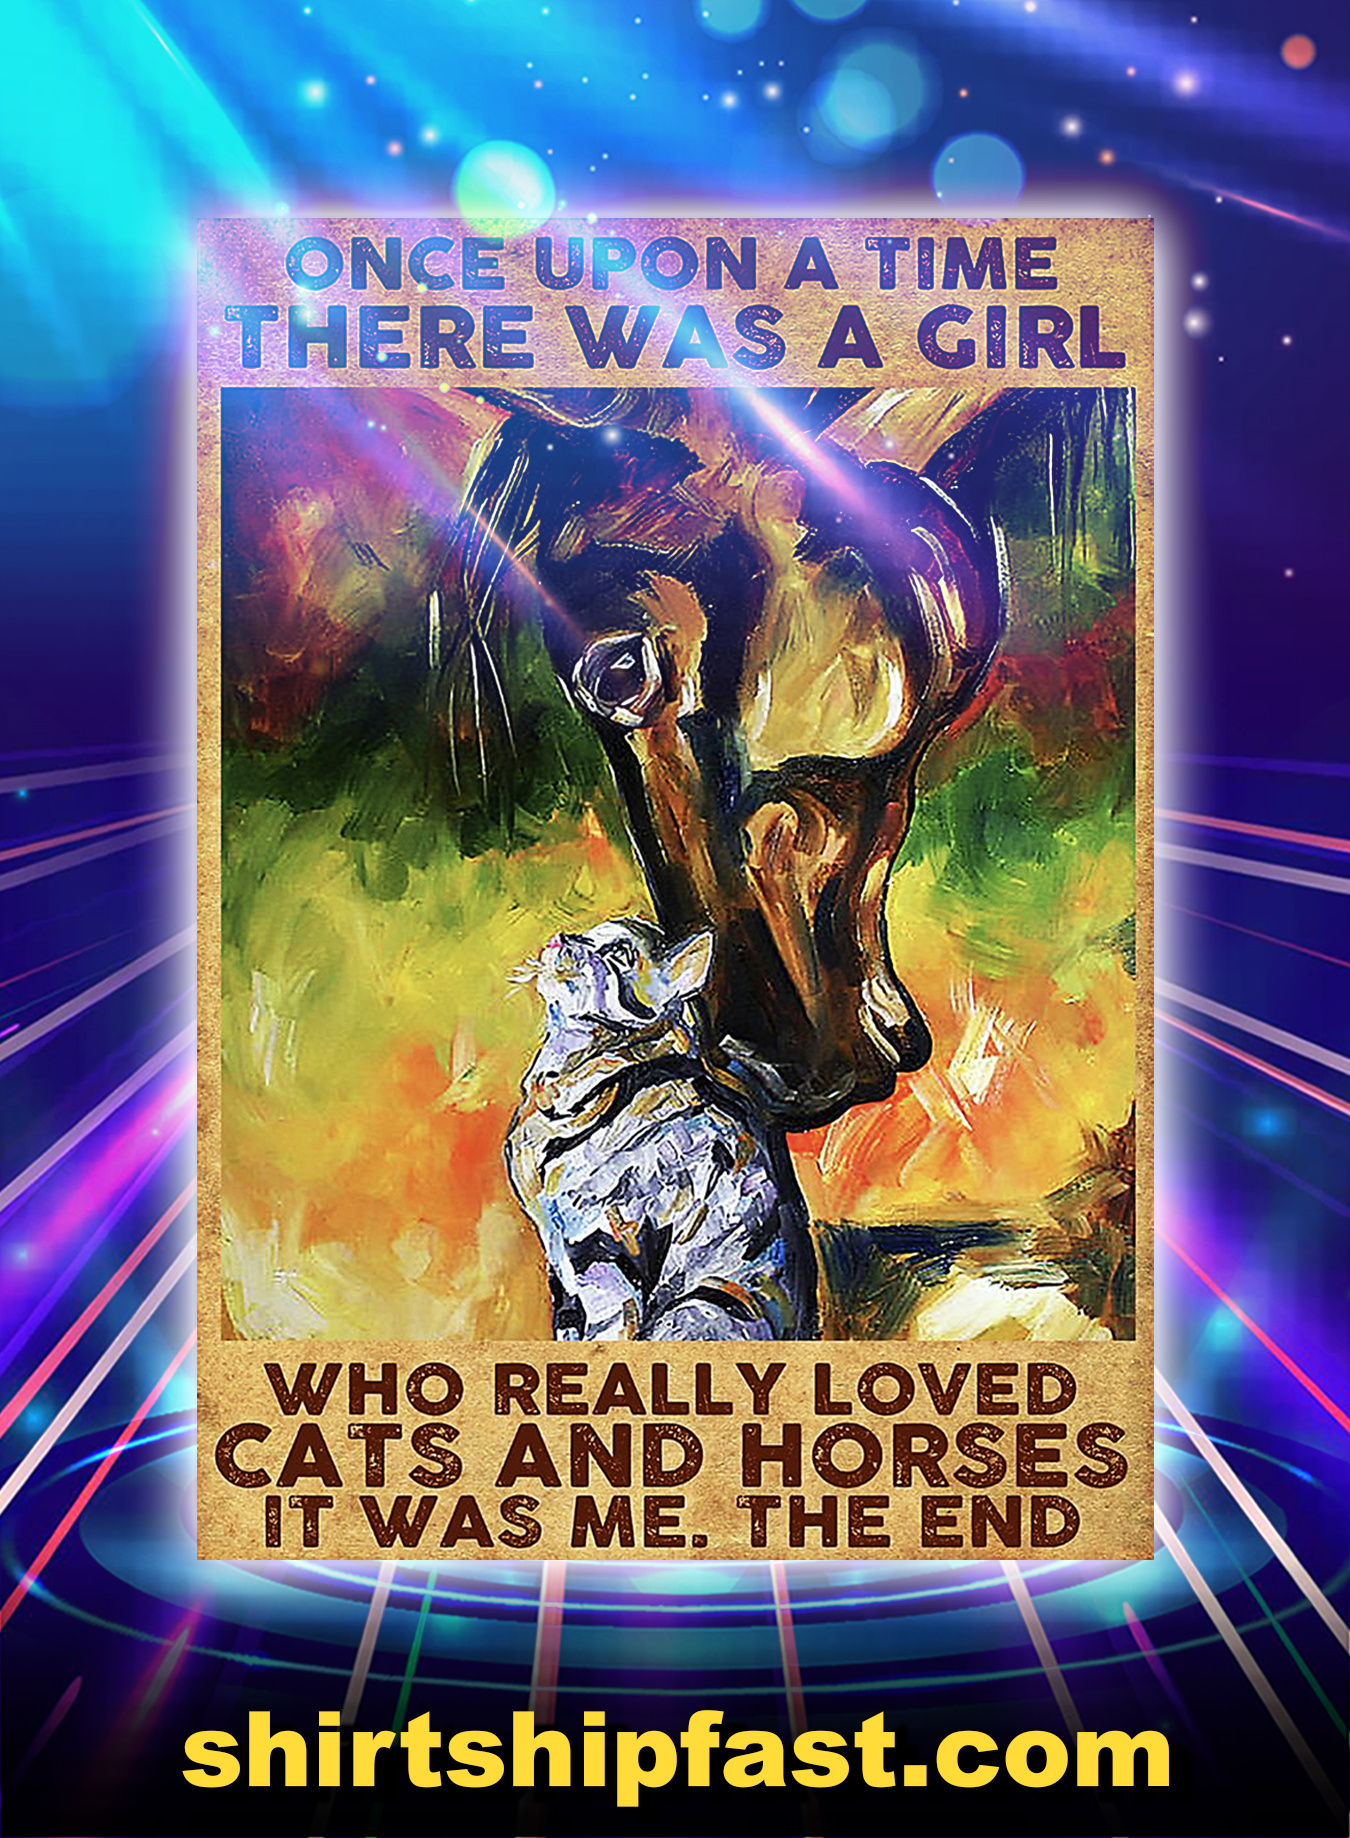 Once upon a time there was a girl who really loved cats and horses poster - A3